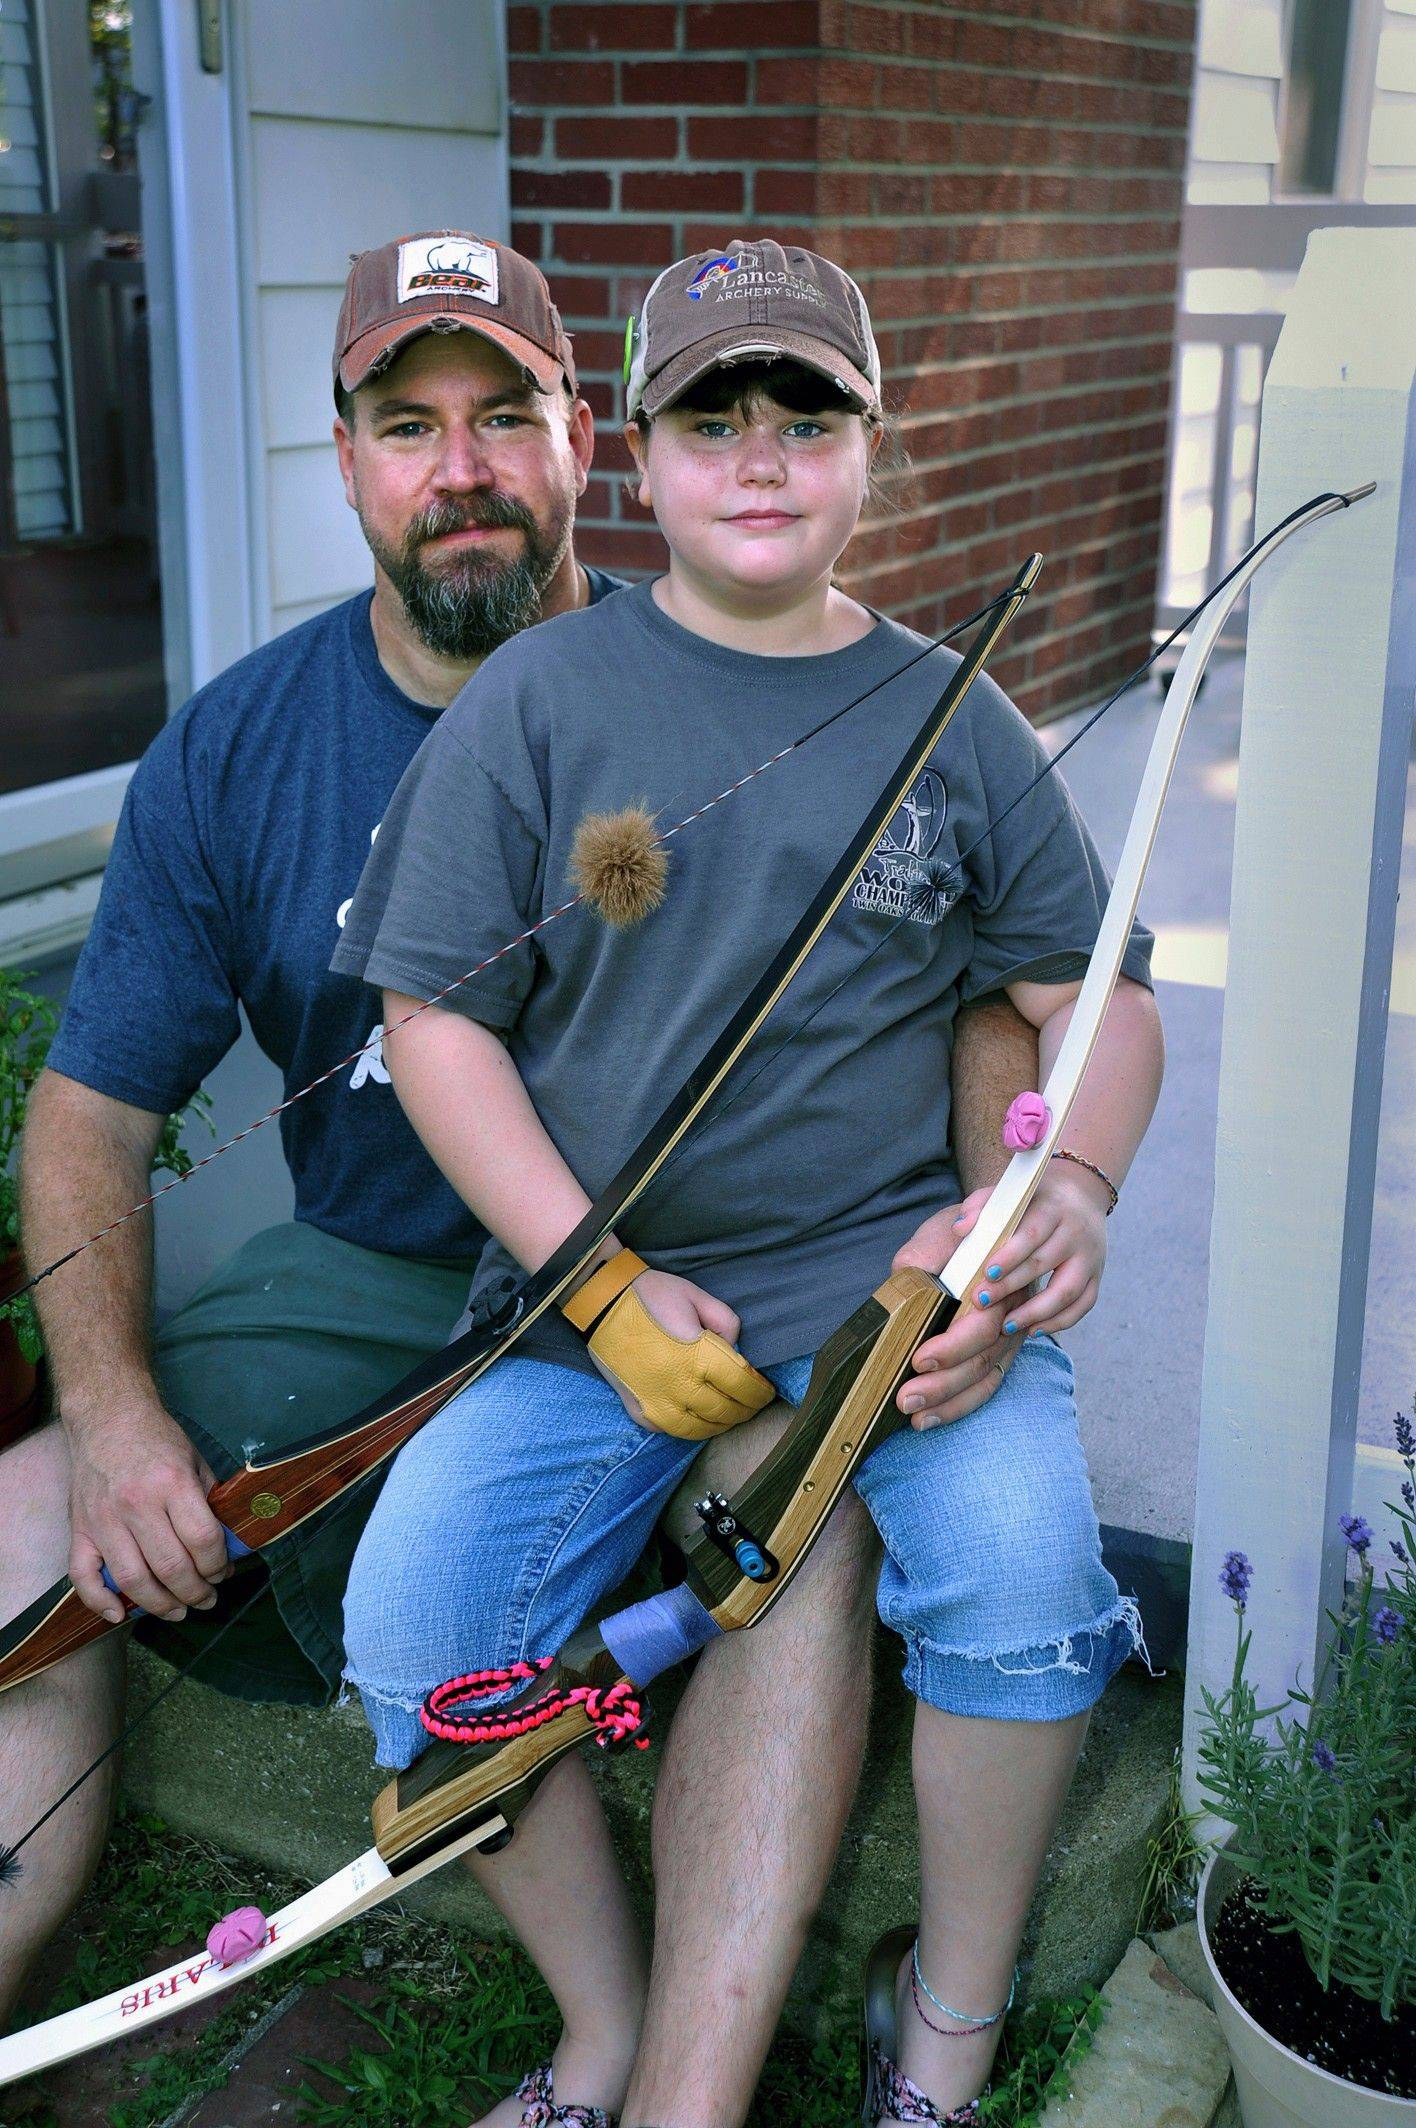 Molly McHargue, 9, of Herrin has been perfecting her archery skills and winning competitions like her dad, Paul. Molly was awarded second place July 17 in the cub division for 8- to 10-year-olds at the International Bow Hunters Organization Traditional World Championship in Clarksville, Tenn.